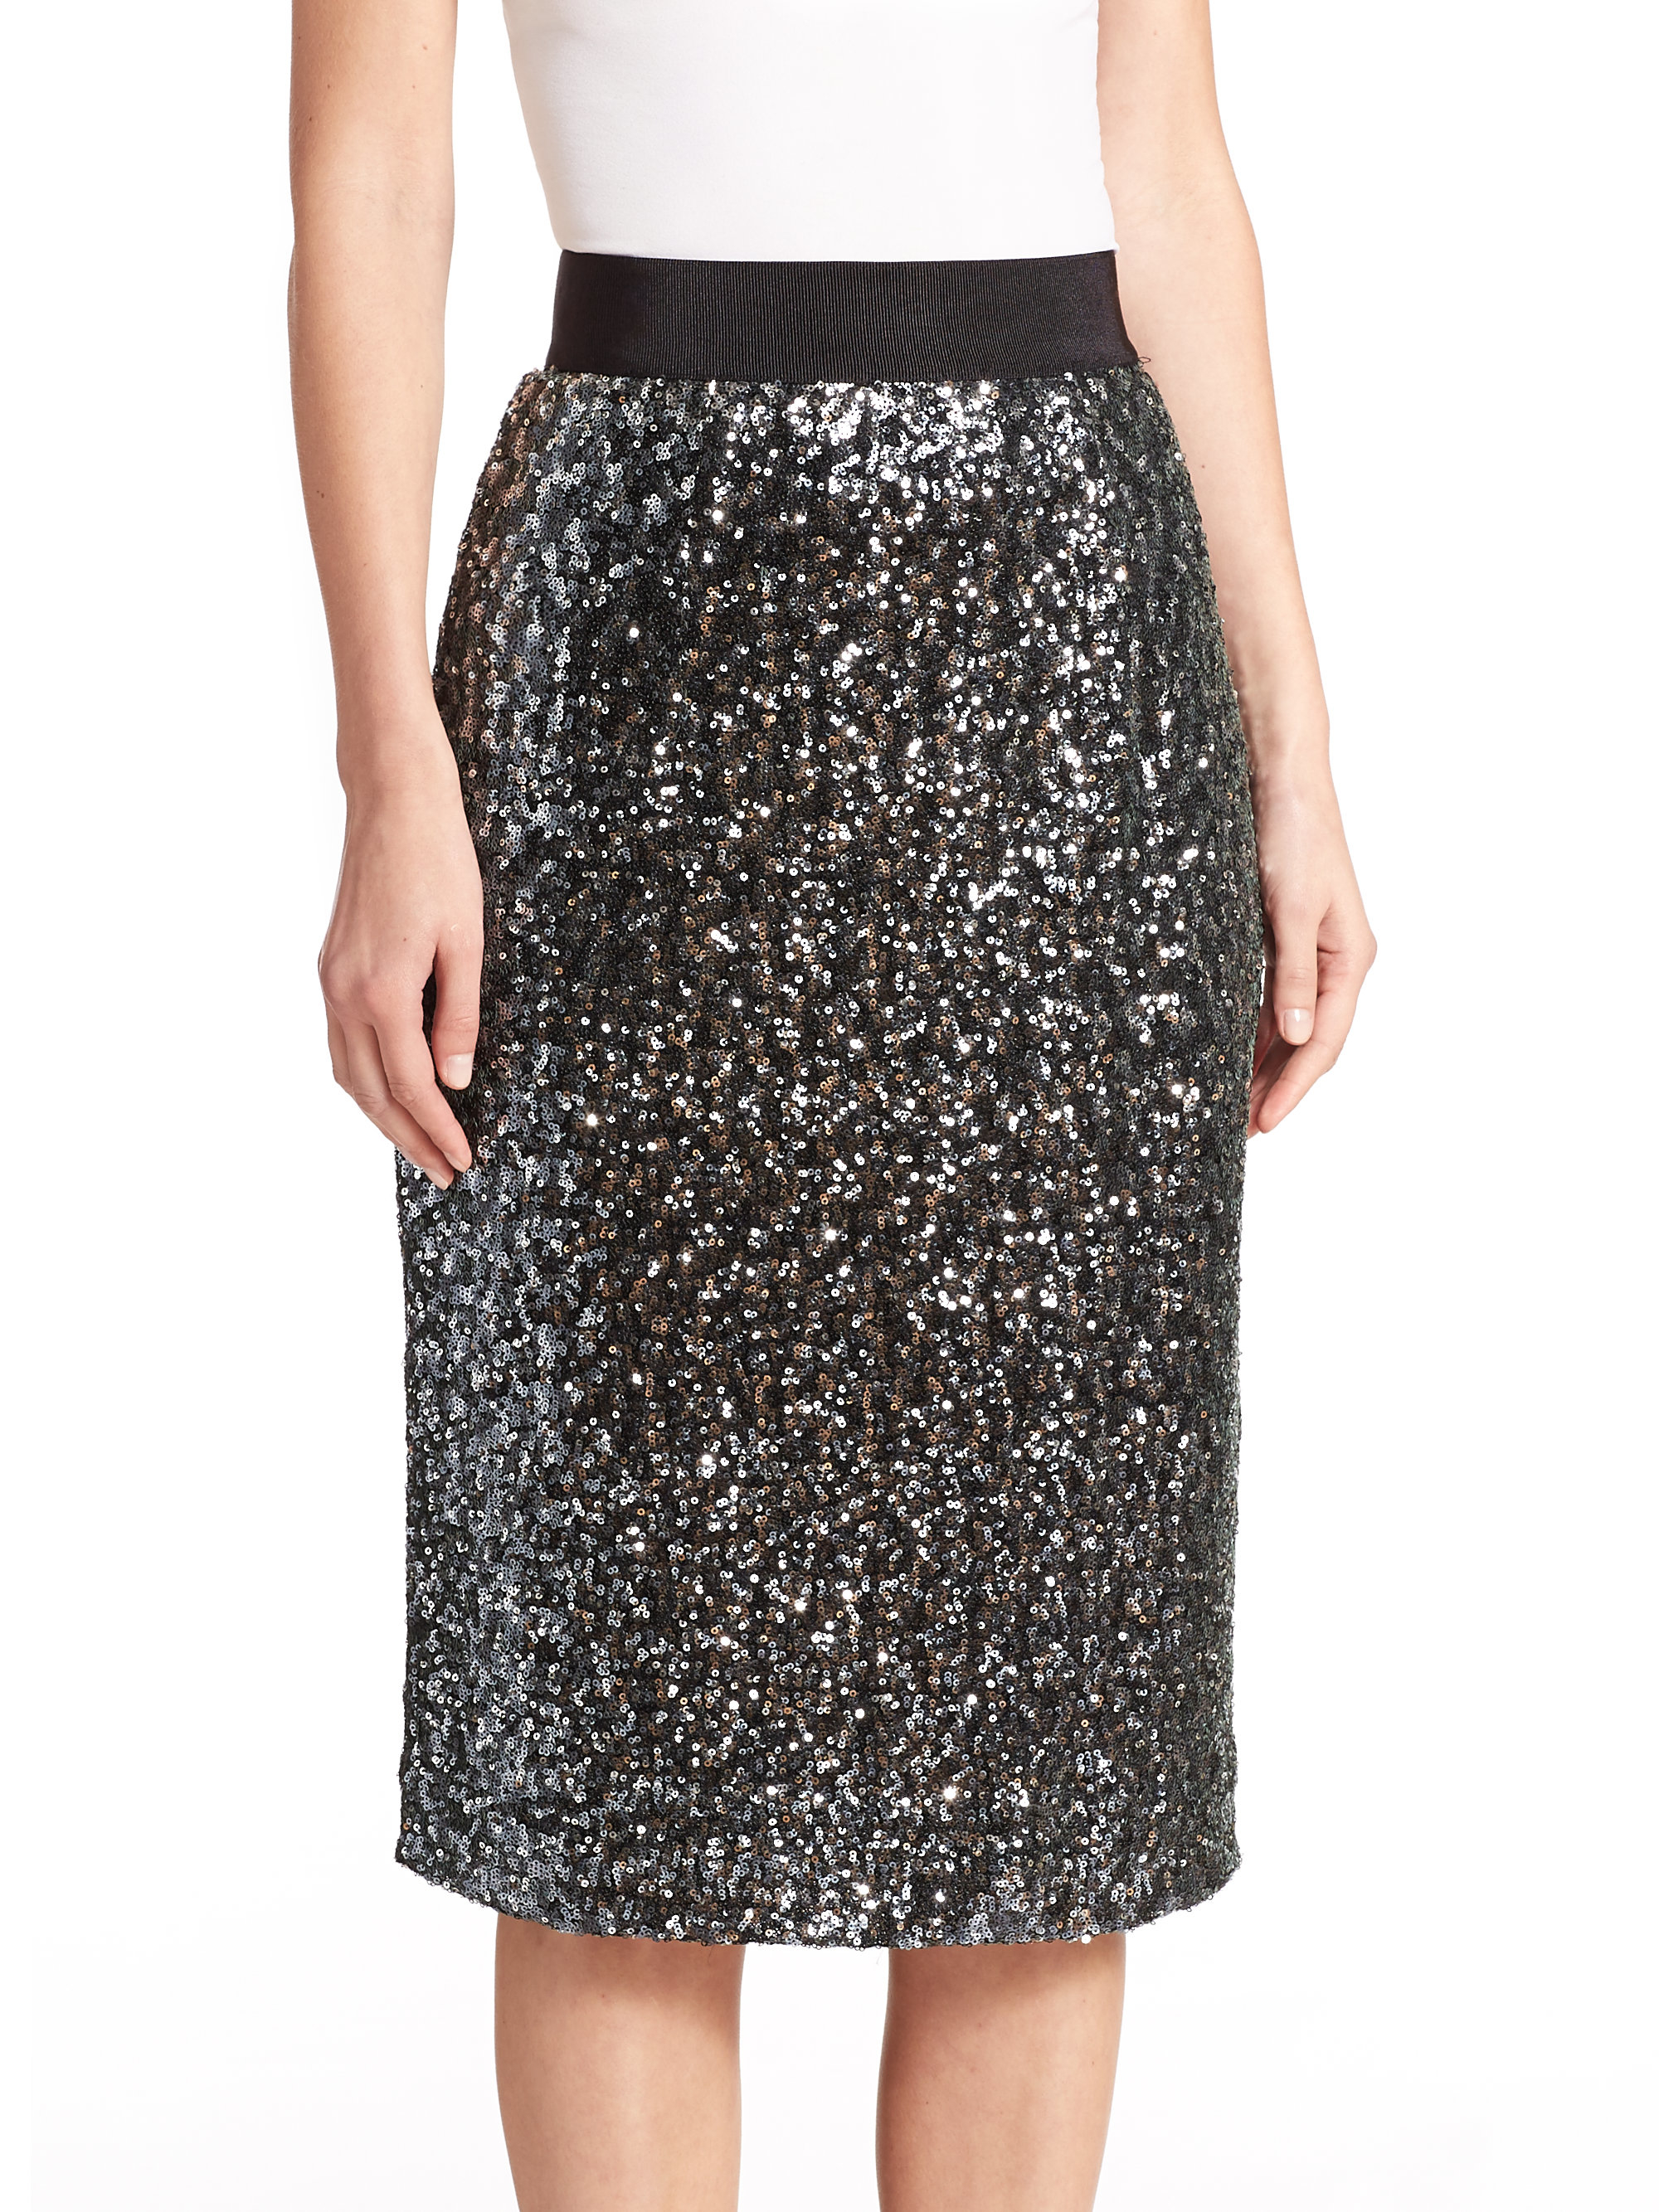 Milly Stretch Sequin Midi Skirt in Black | Lyst